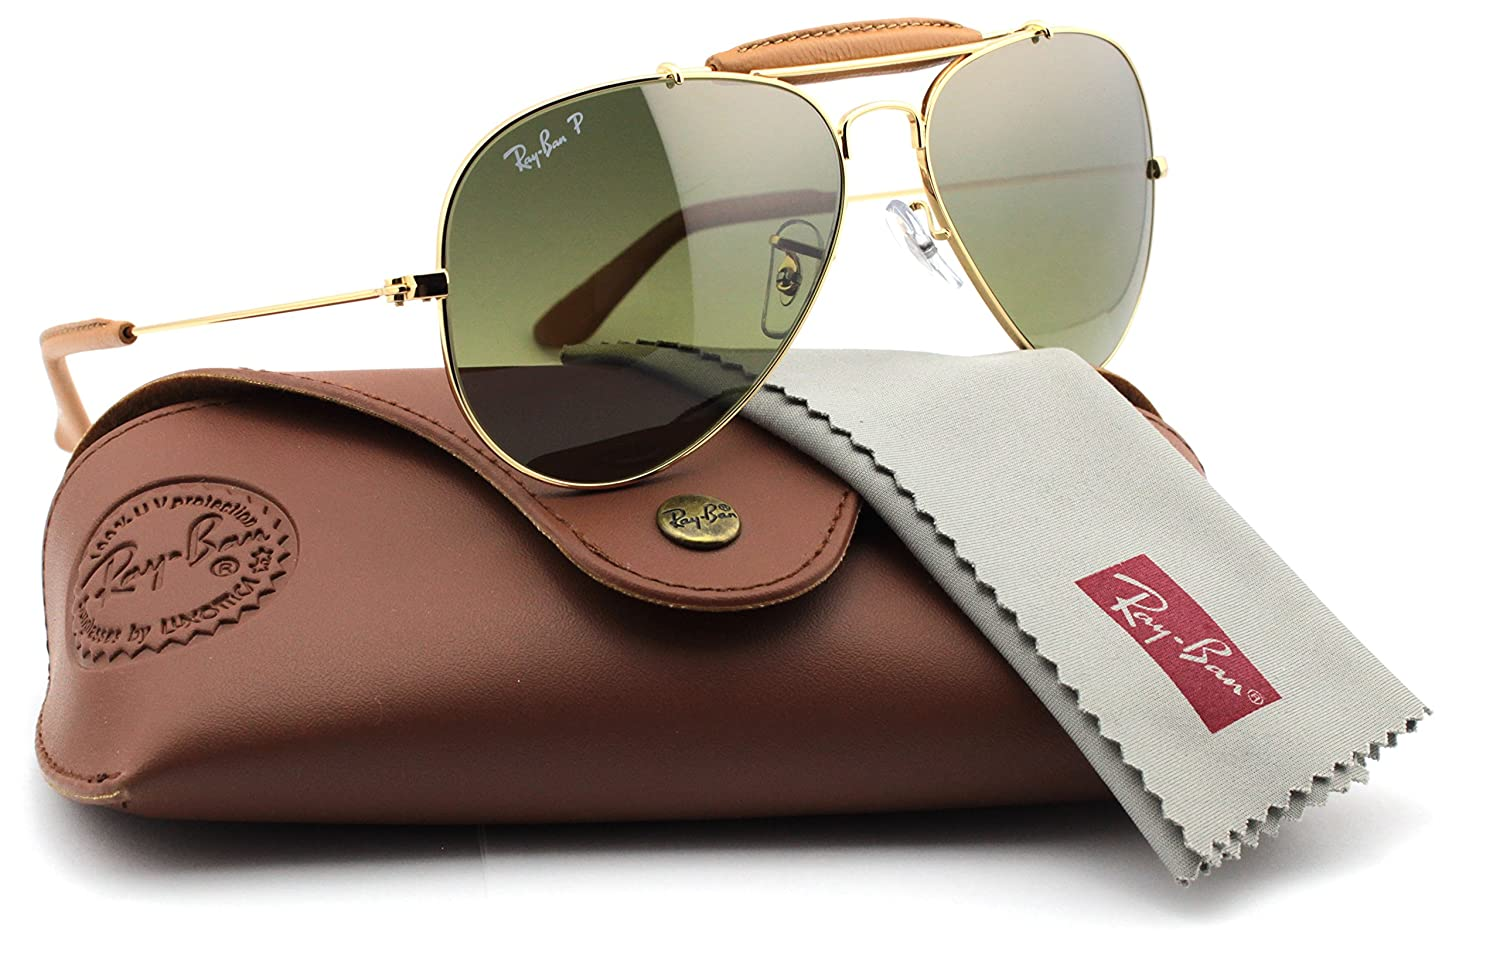 bfe2835bfdc4b Amazon.com  Ray-Ban RB3422Q 001 M9 OUTDOORSMAN CRAFT Gold Frame   Polarized  Green Lens 58mm  Clothing